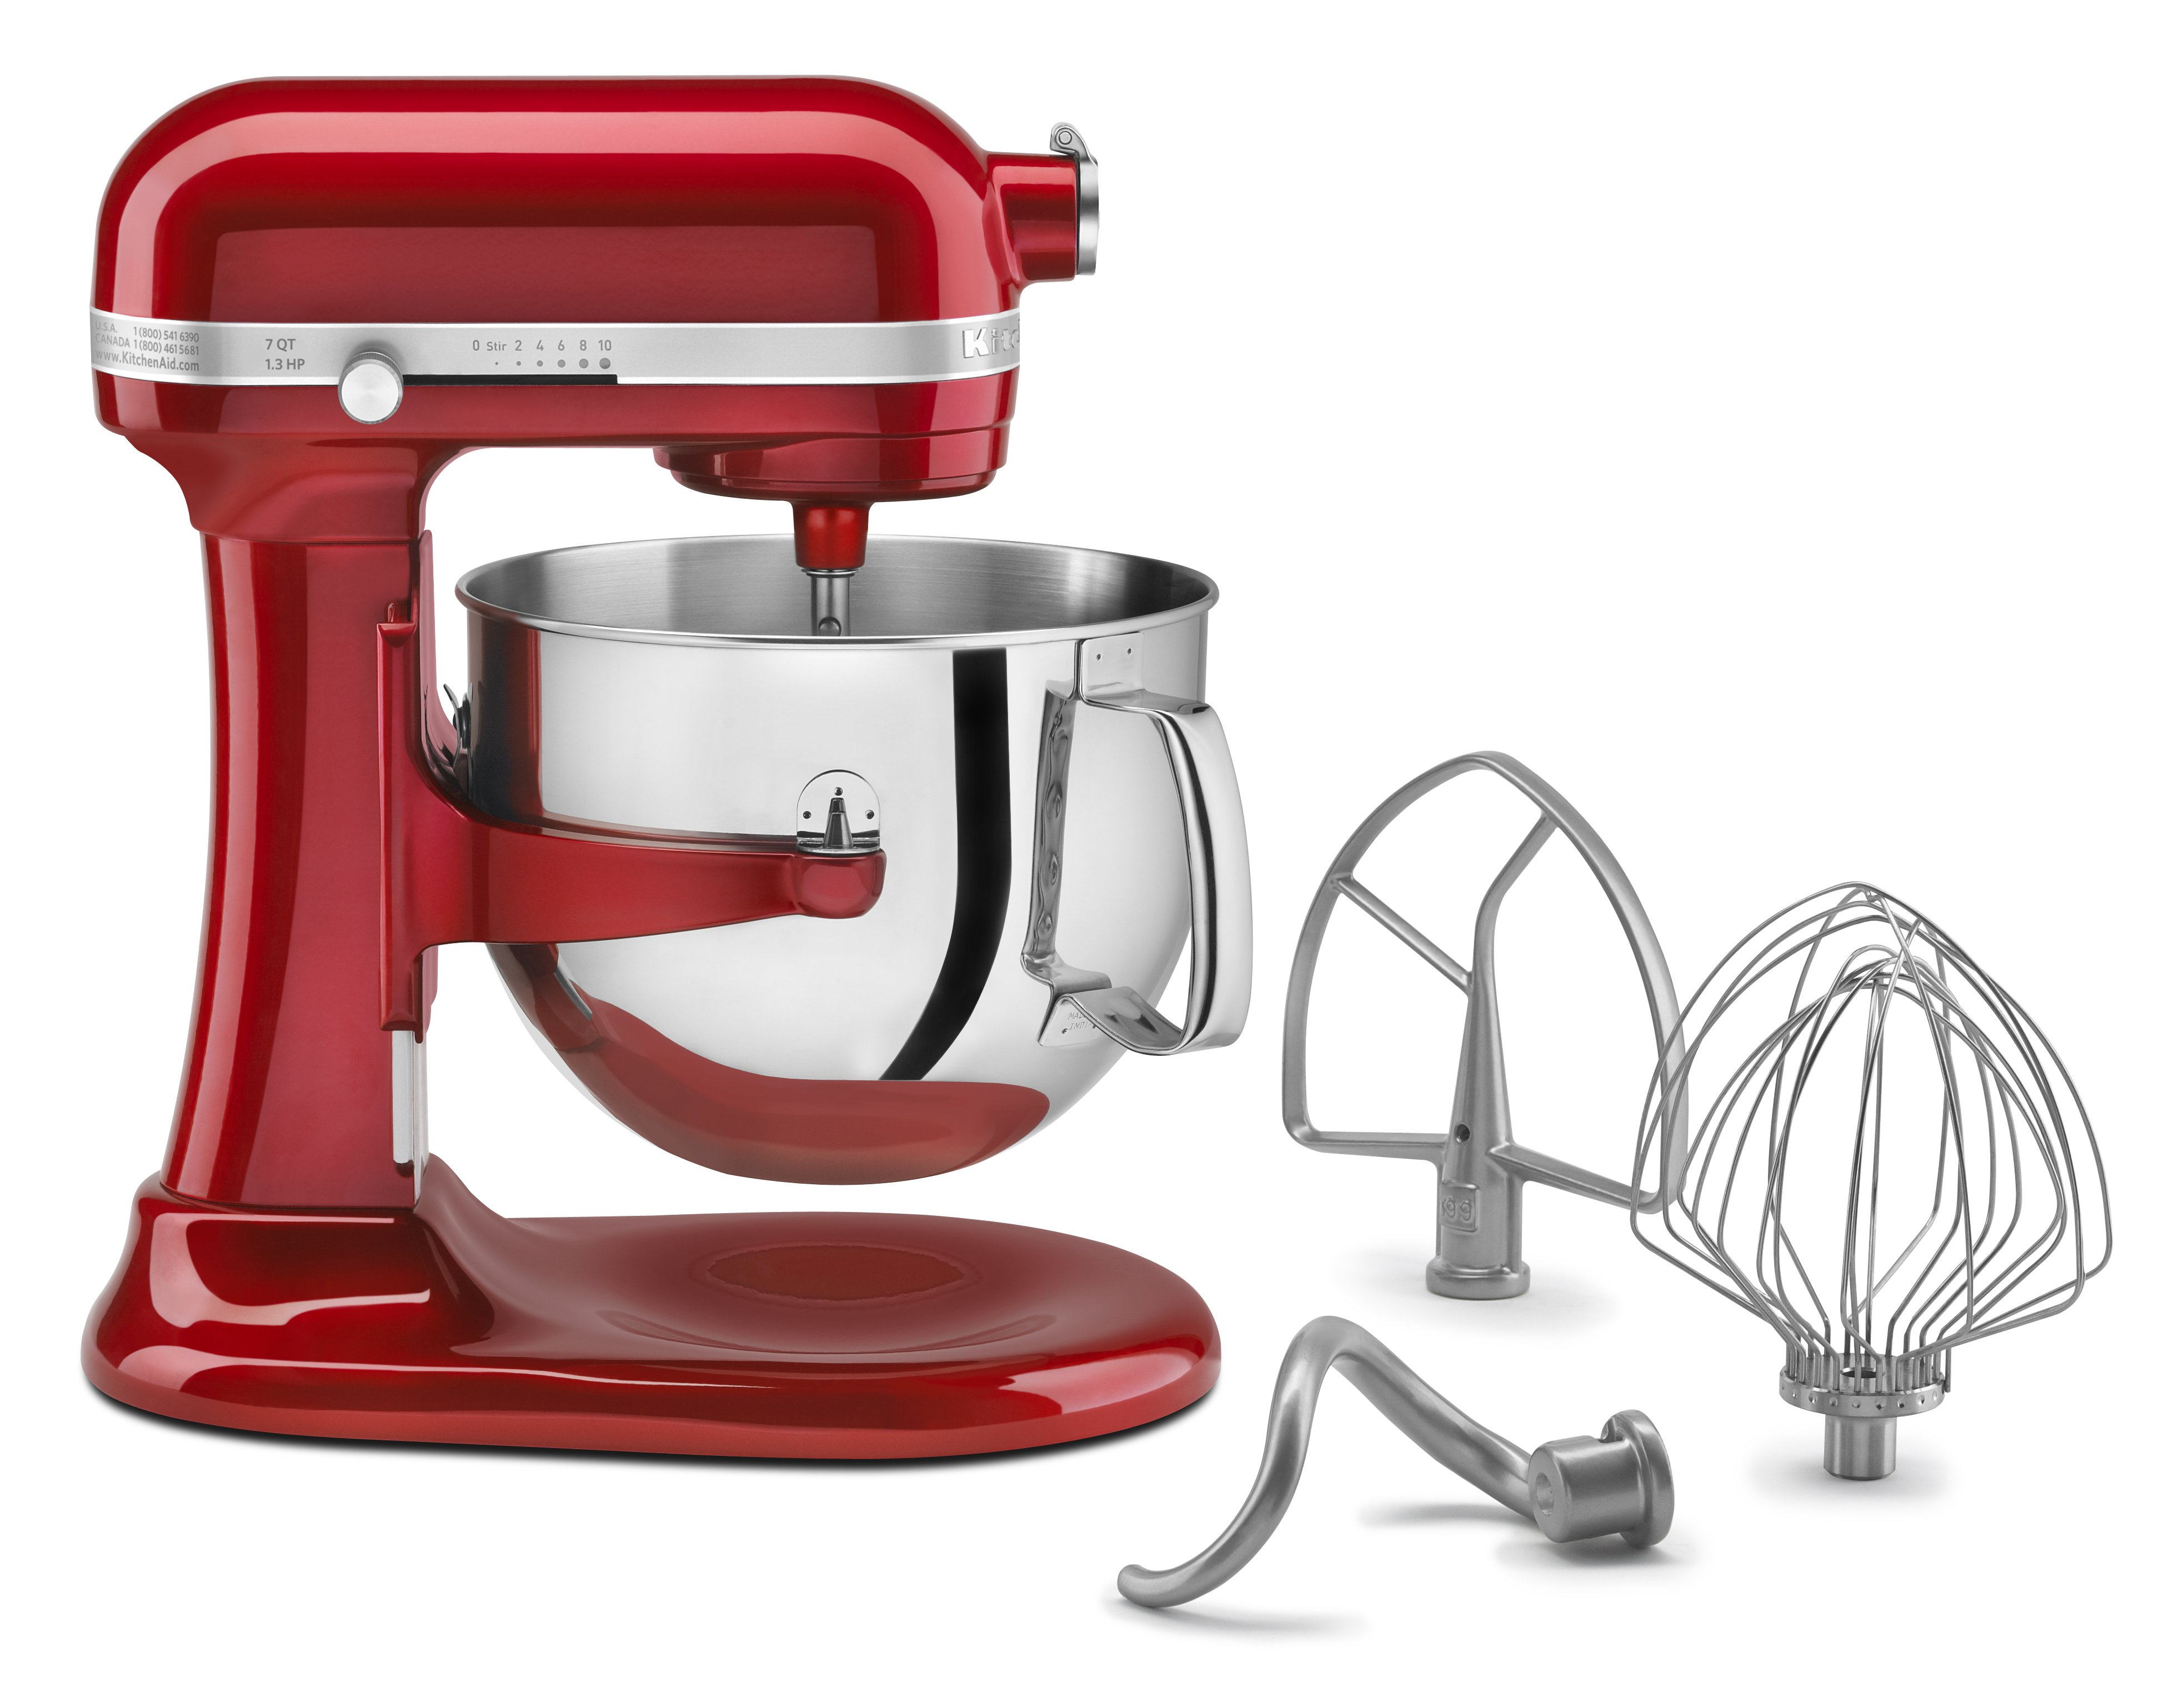 Kitchenaid Stand Mixer ~ Days of giveaways kitchenaid quart stand mixer